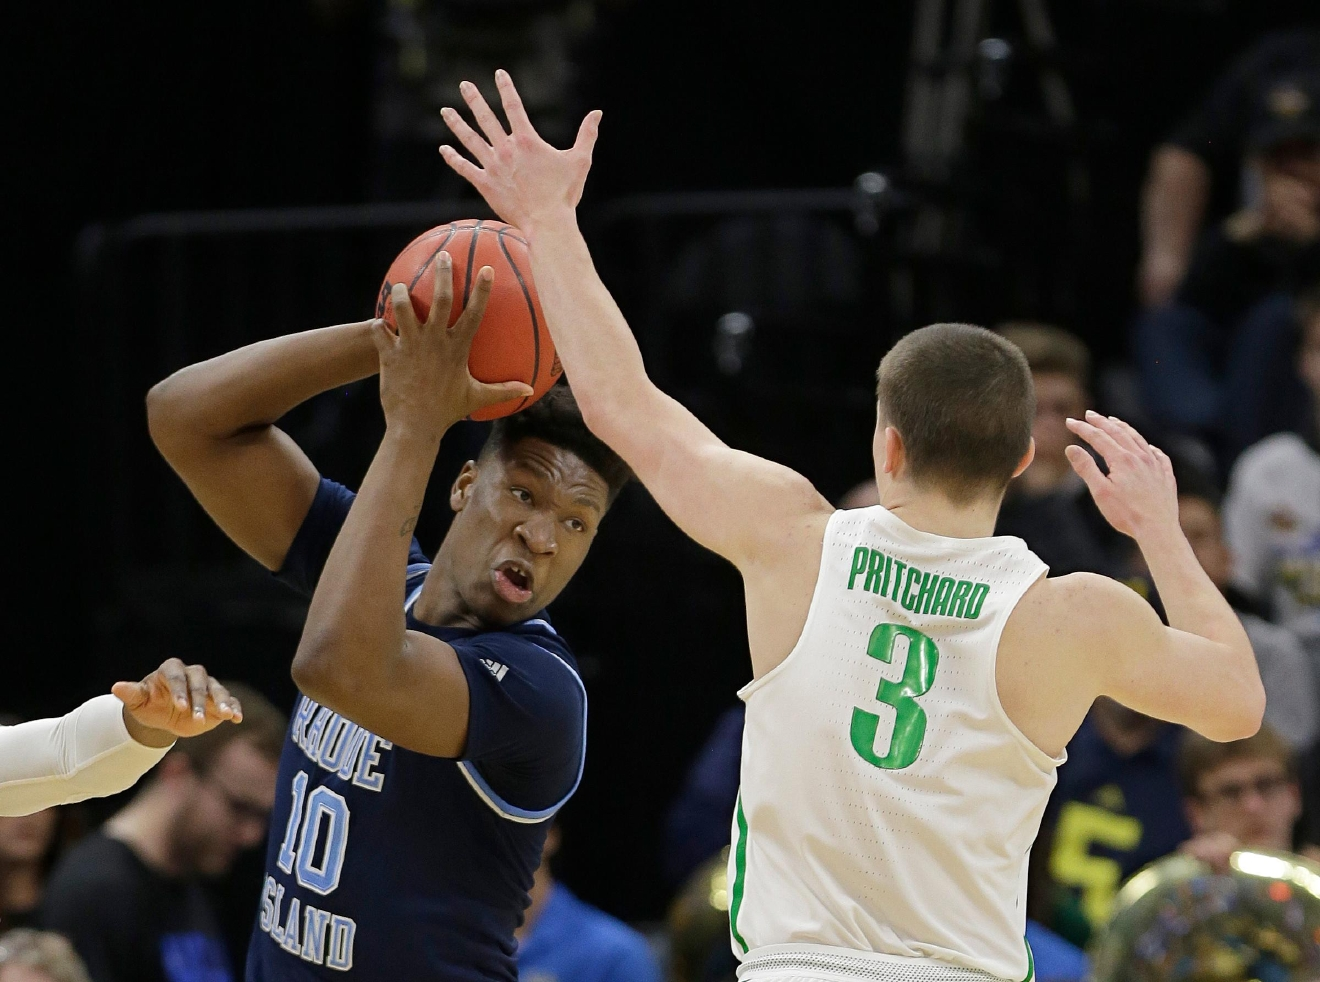 Oregon guard Payton Pritchard, right, guards Rhode Island forward Cyril Langevine during the first half of a second-round game of the men's NCAA college basketball tournament in Sacramento, Calif., Sunday, March 19, 2017. (AP Photo/Rich Pedroncelli )